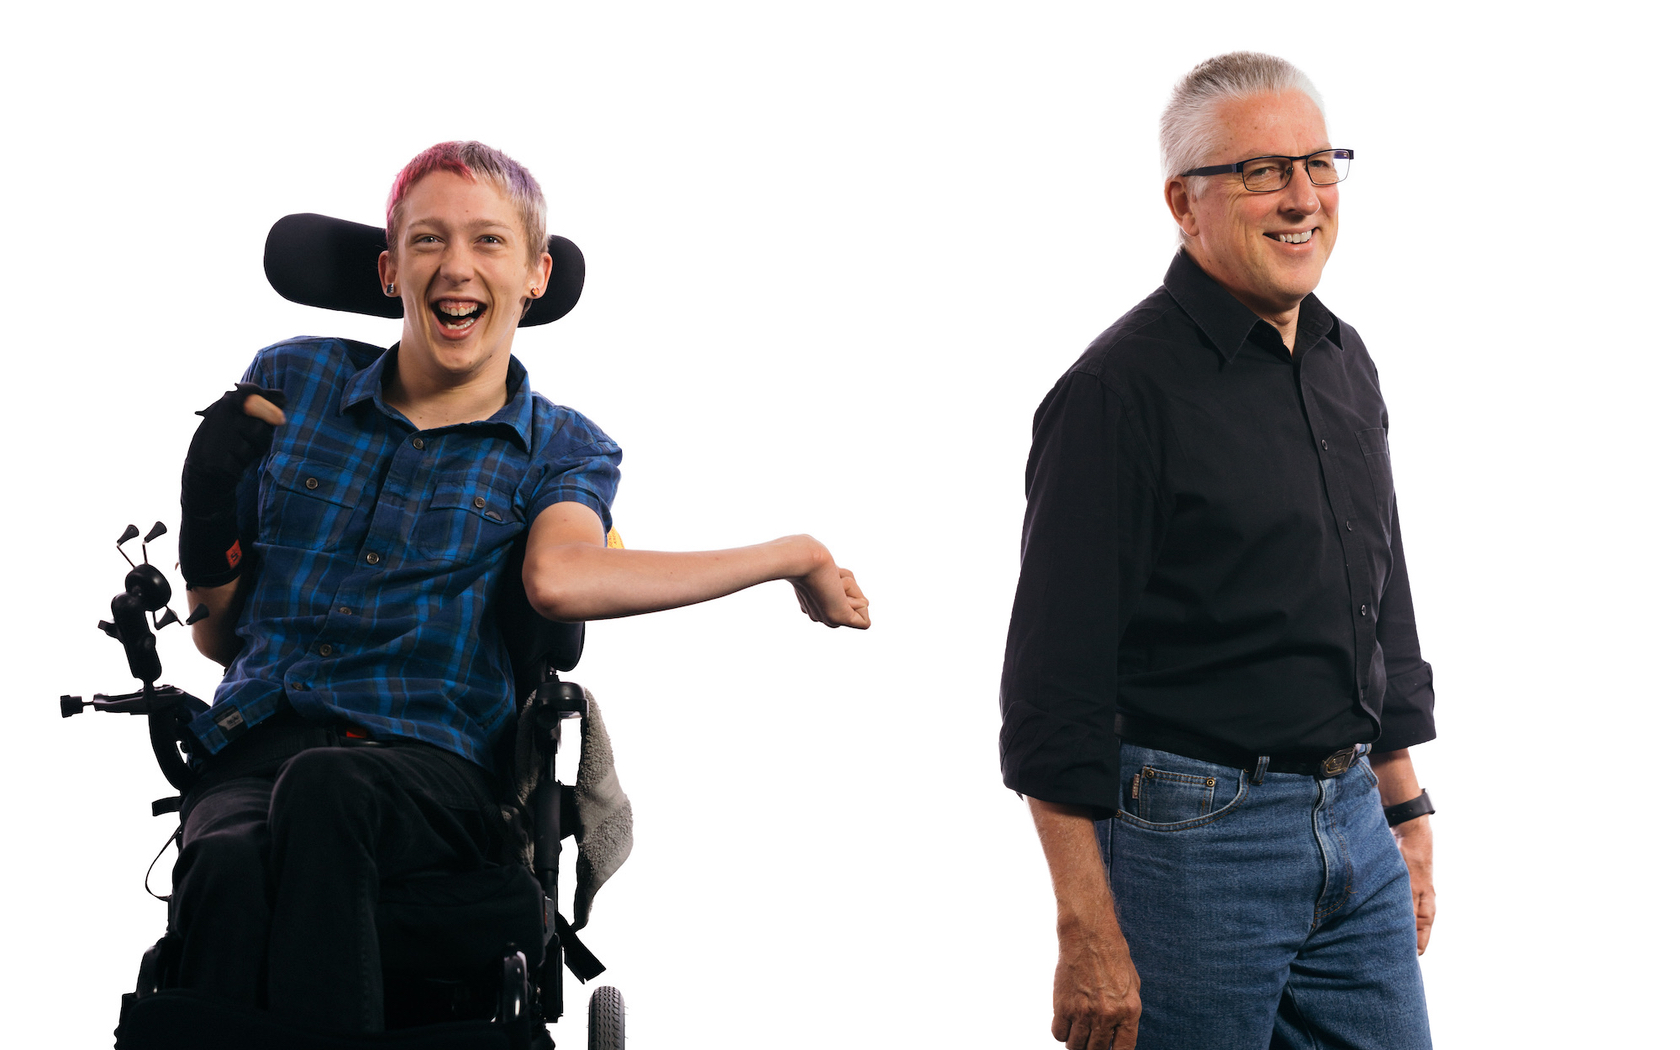 A middle-aged man wearing glasses stands and smiles off-camera. Next to him a young man with faded red and blue hair, seated in a wheelchair, smiles to camera.